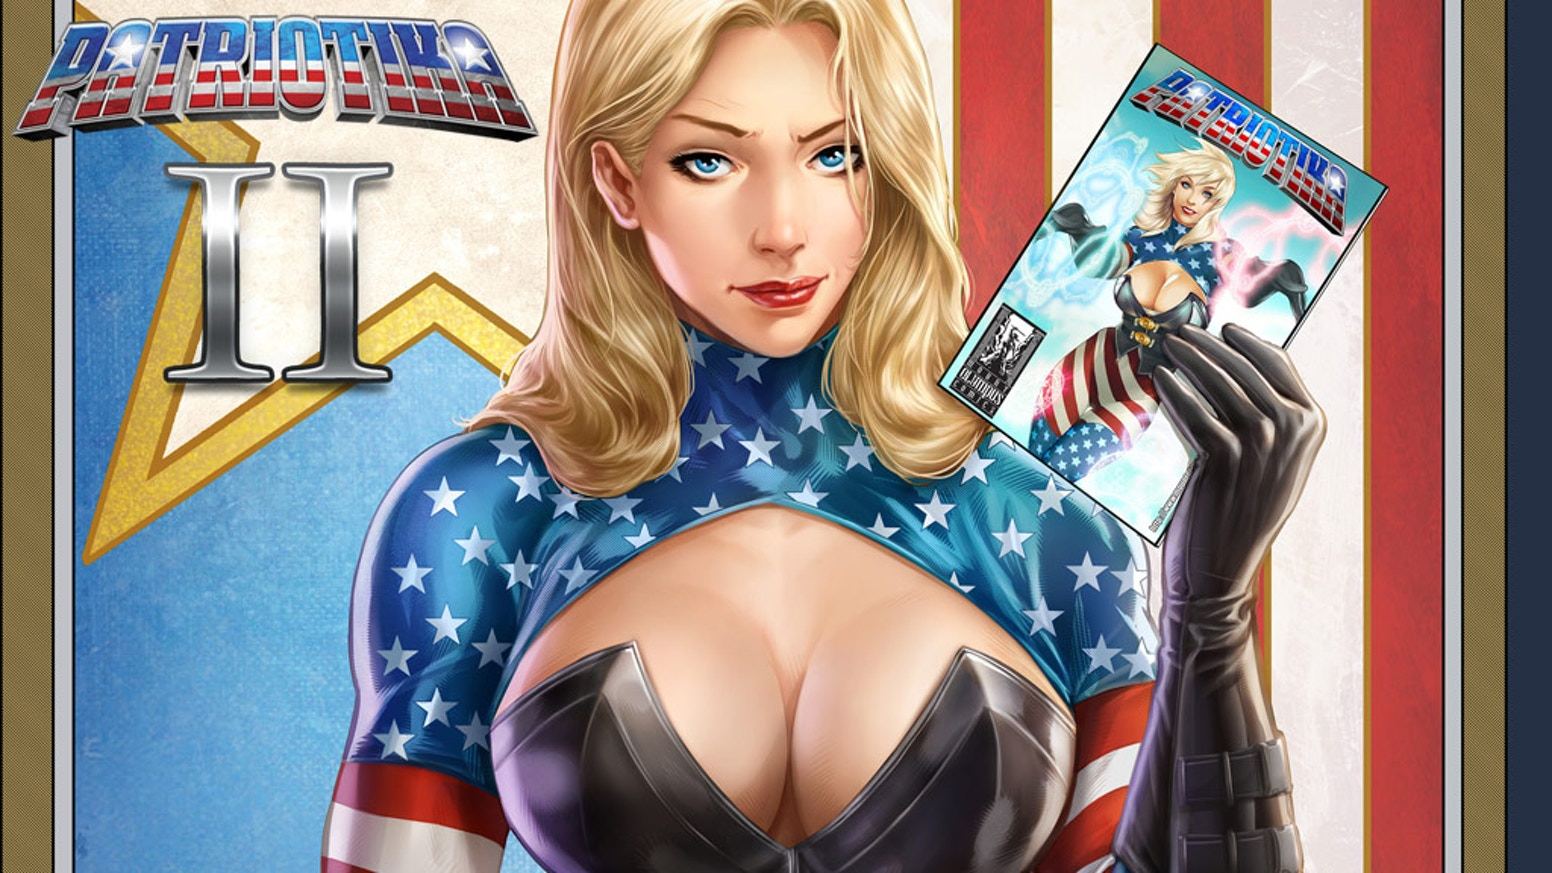 The second issue of Patriotika is here! Can Patriotika handle Gods, monsters and ninjas?!